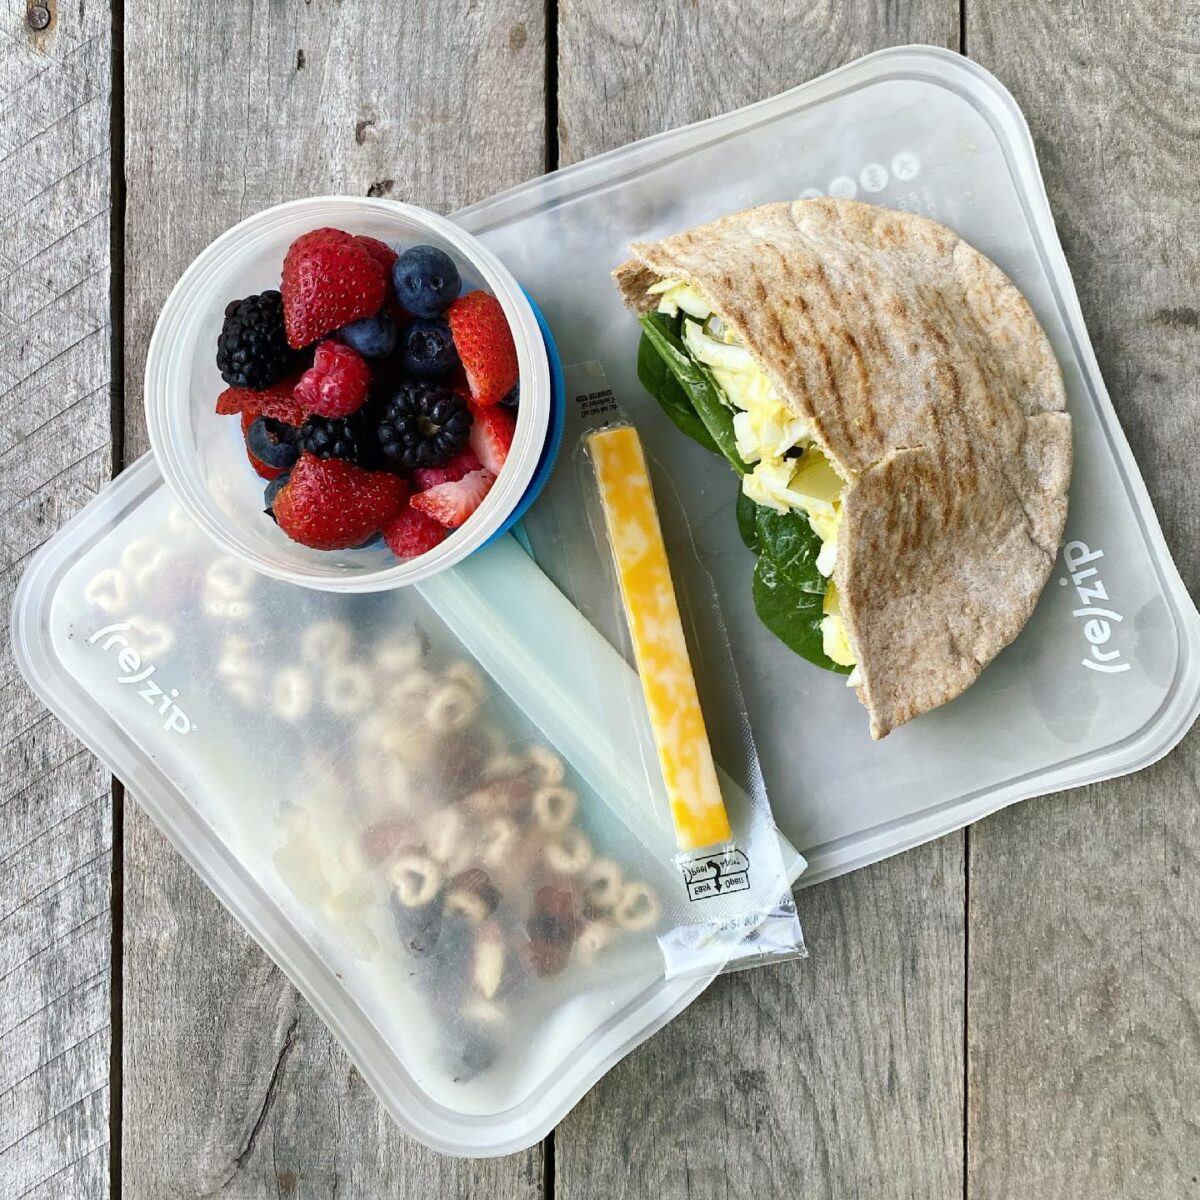 Packed school lunch that includes an egg salad sandwich, cheese stick, mixed berries, and homemade trail mix.